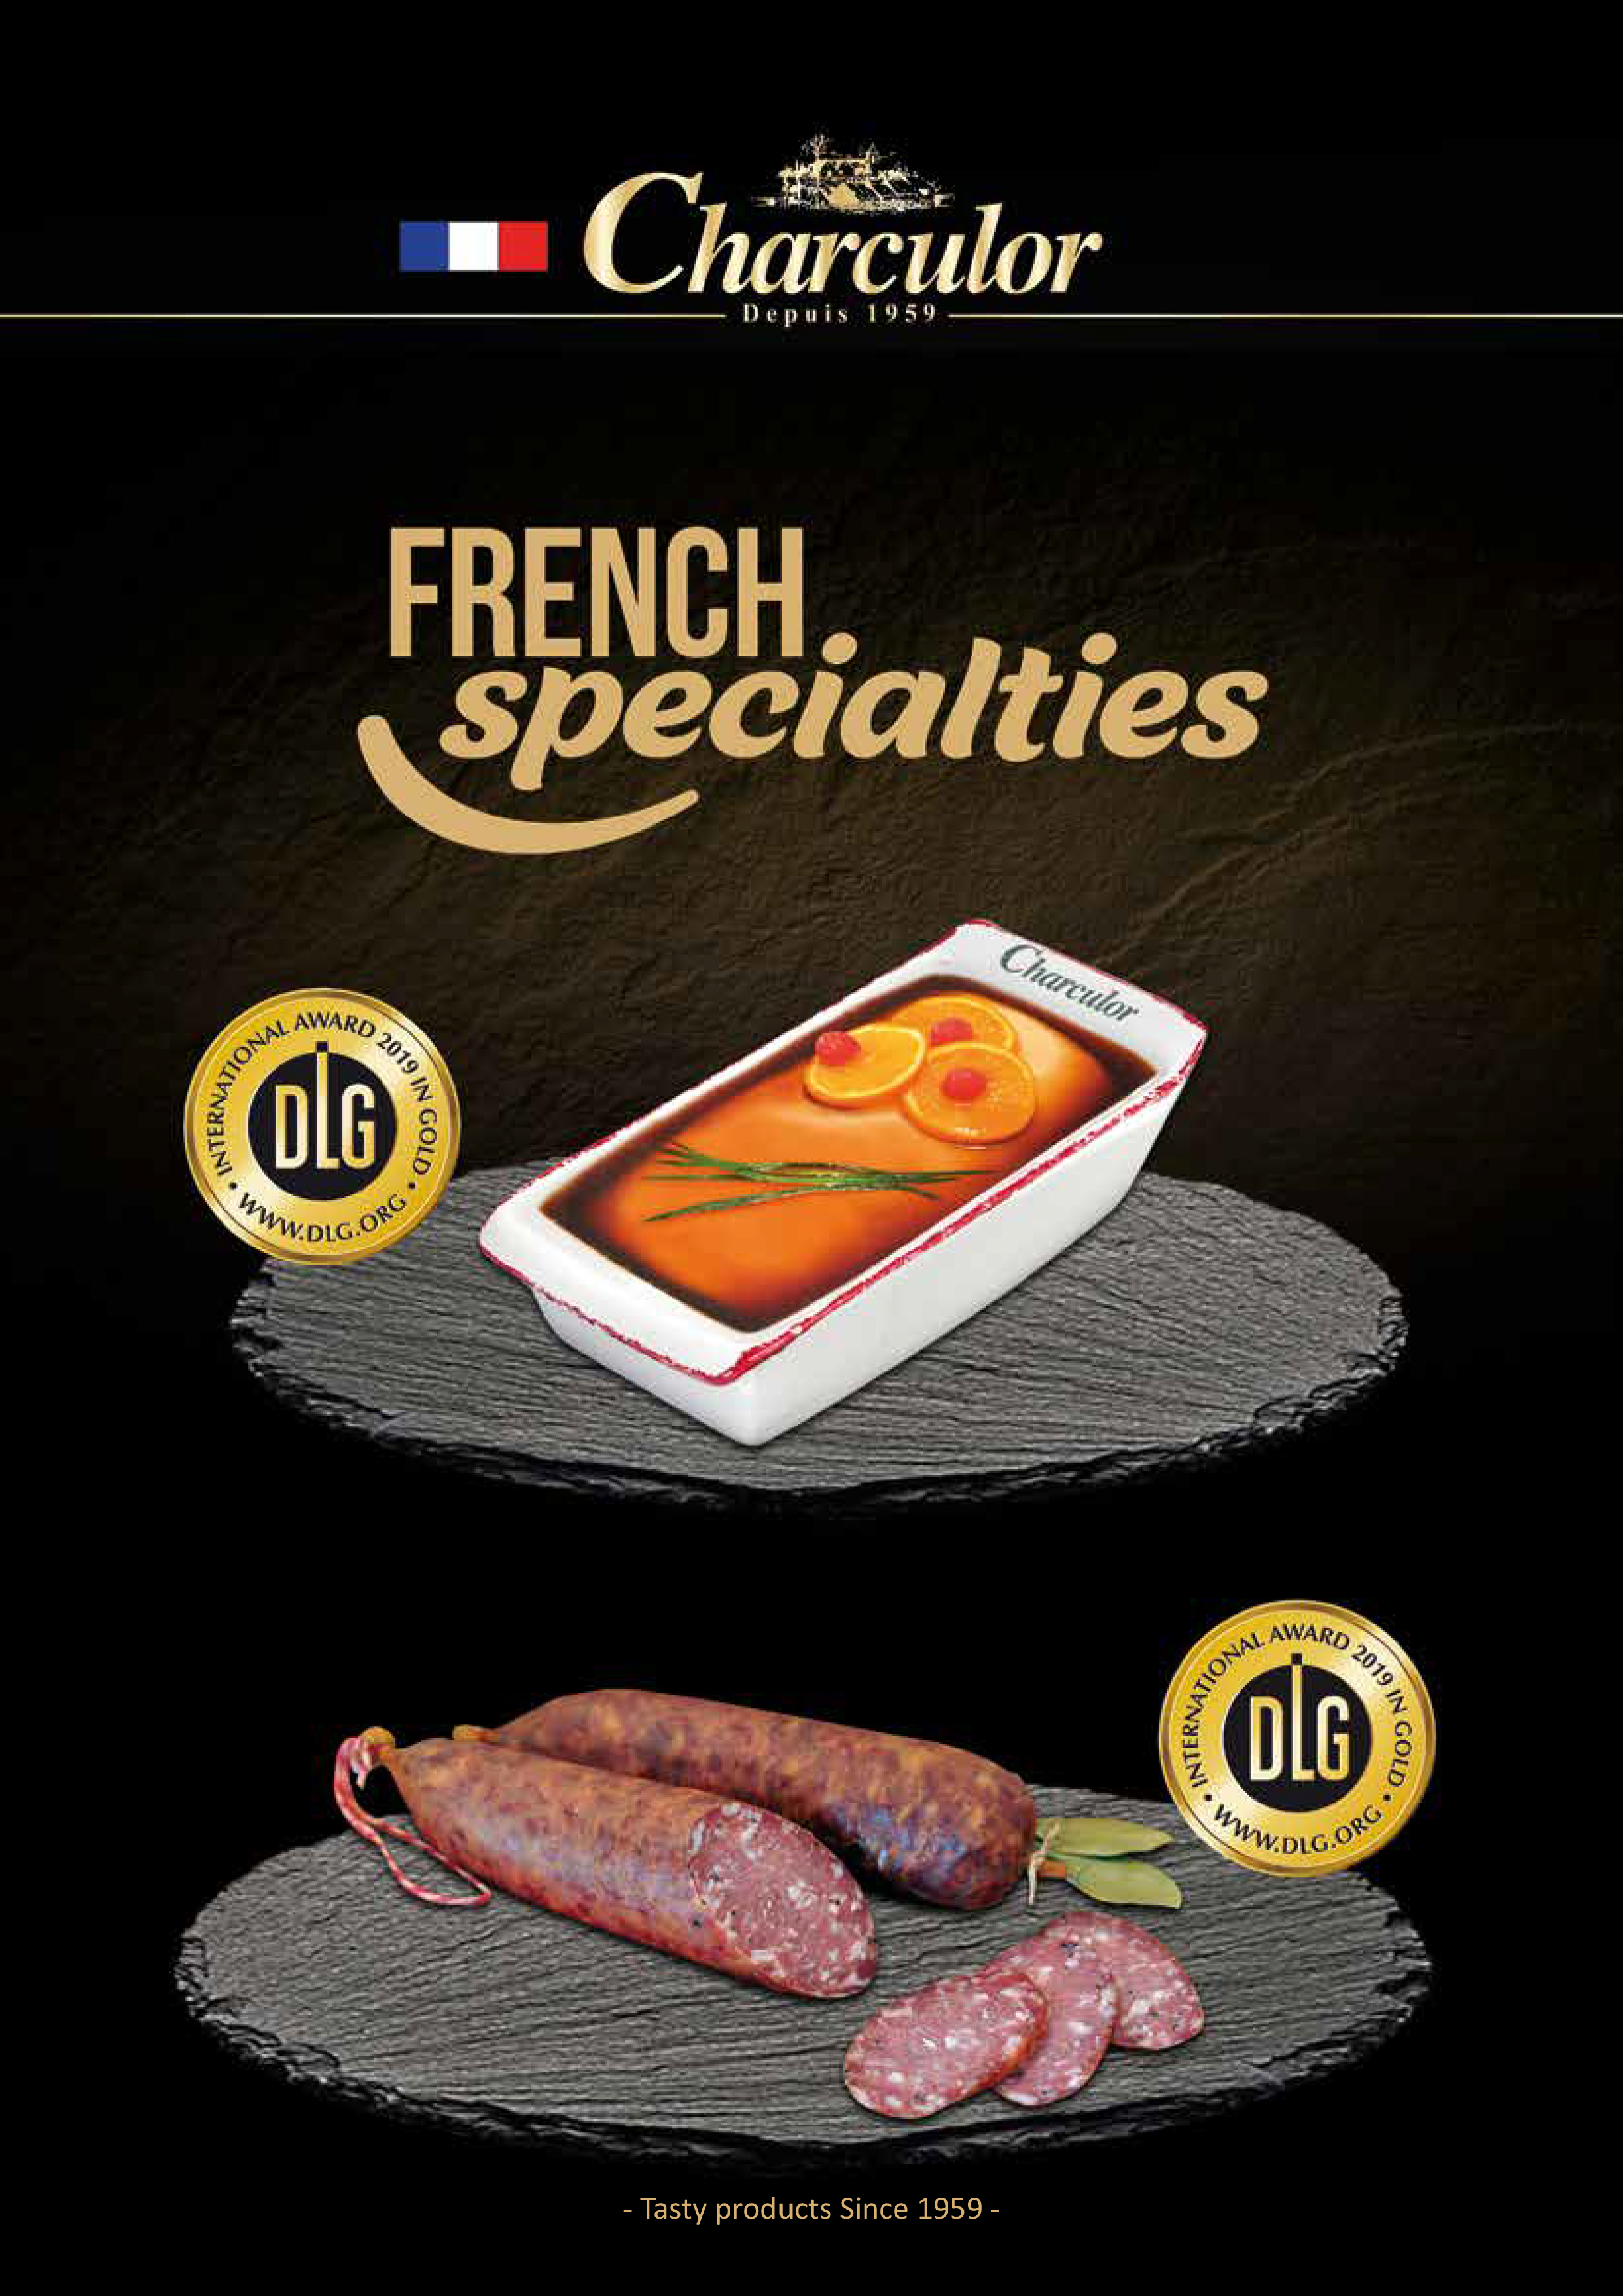 FRENCH-SPECIALTIES